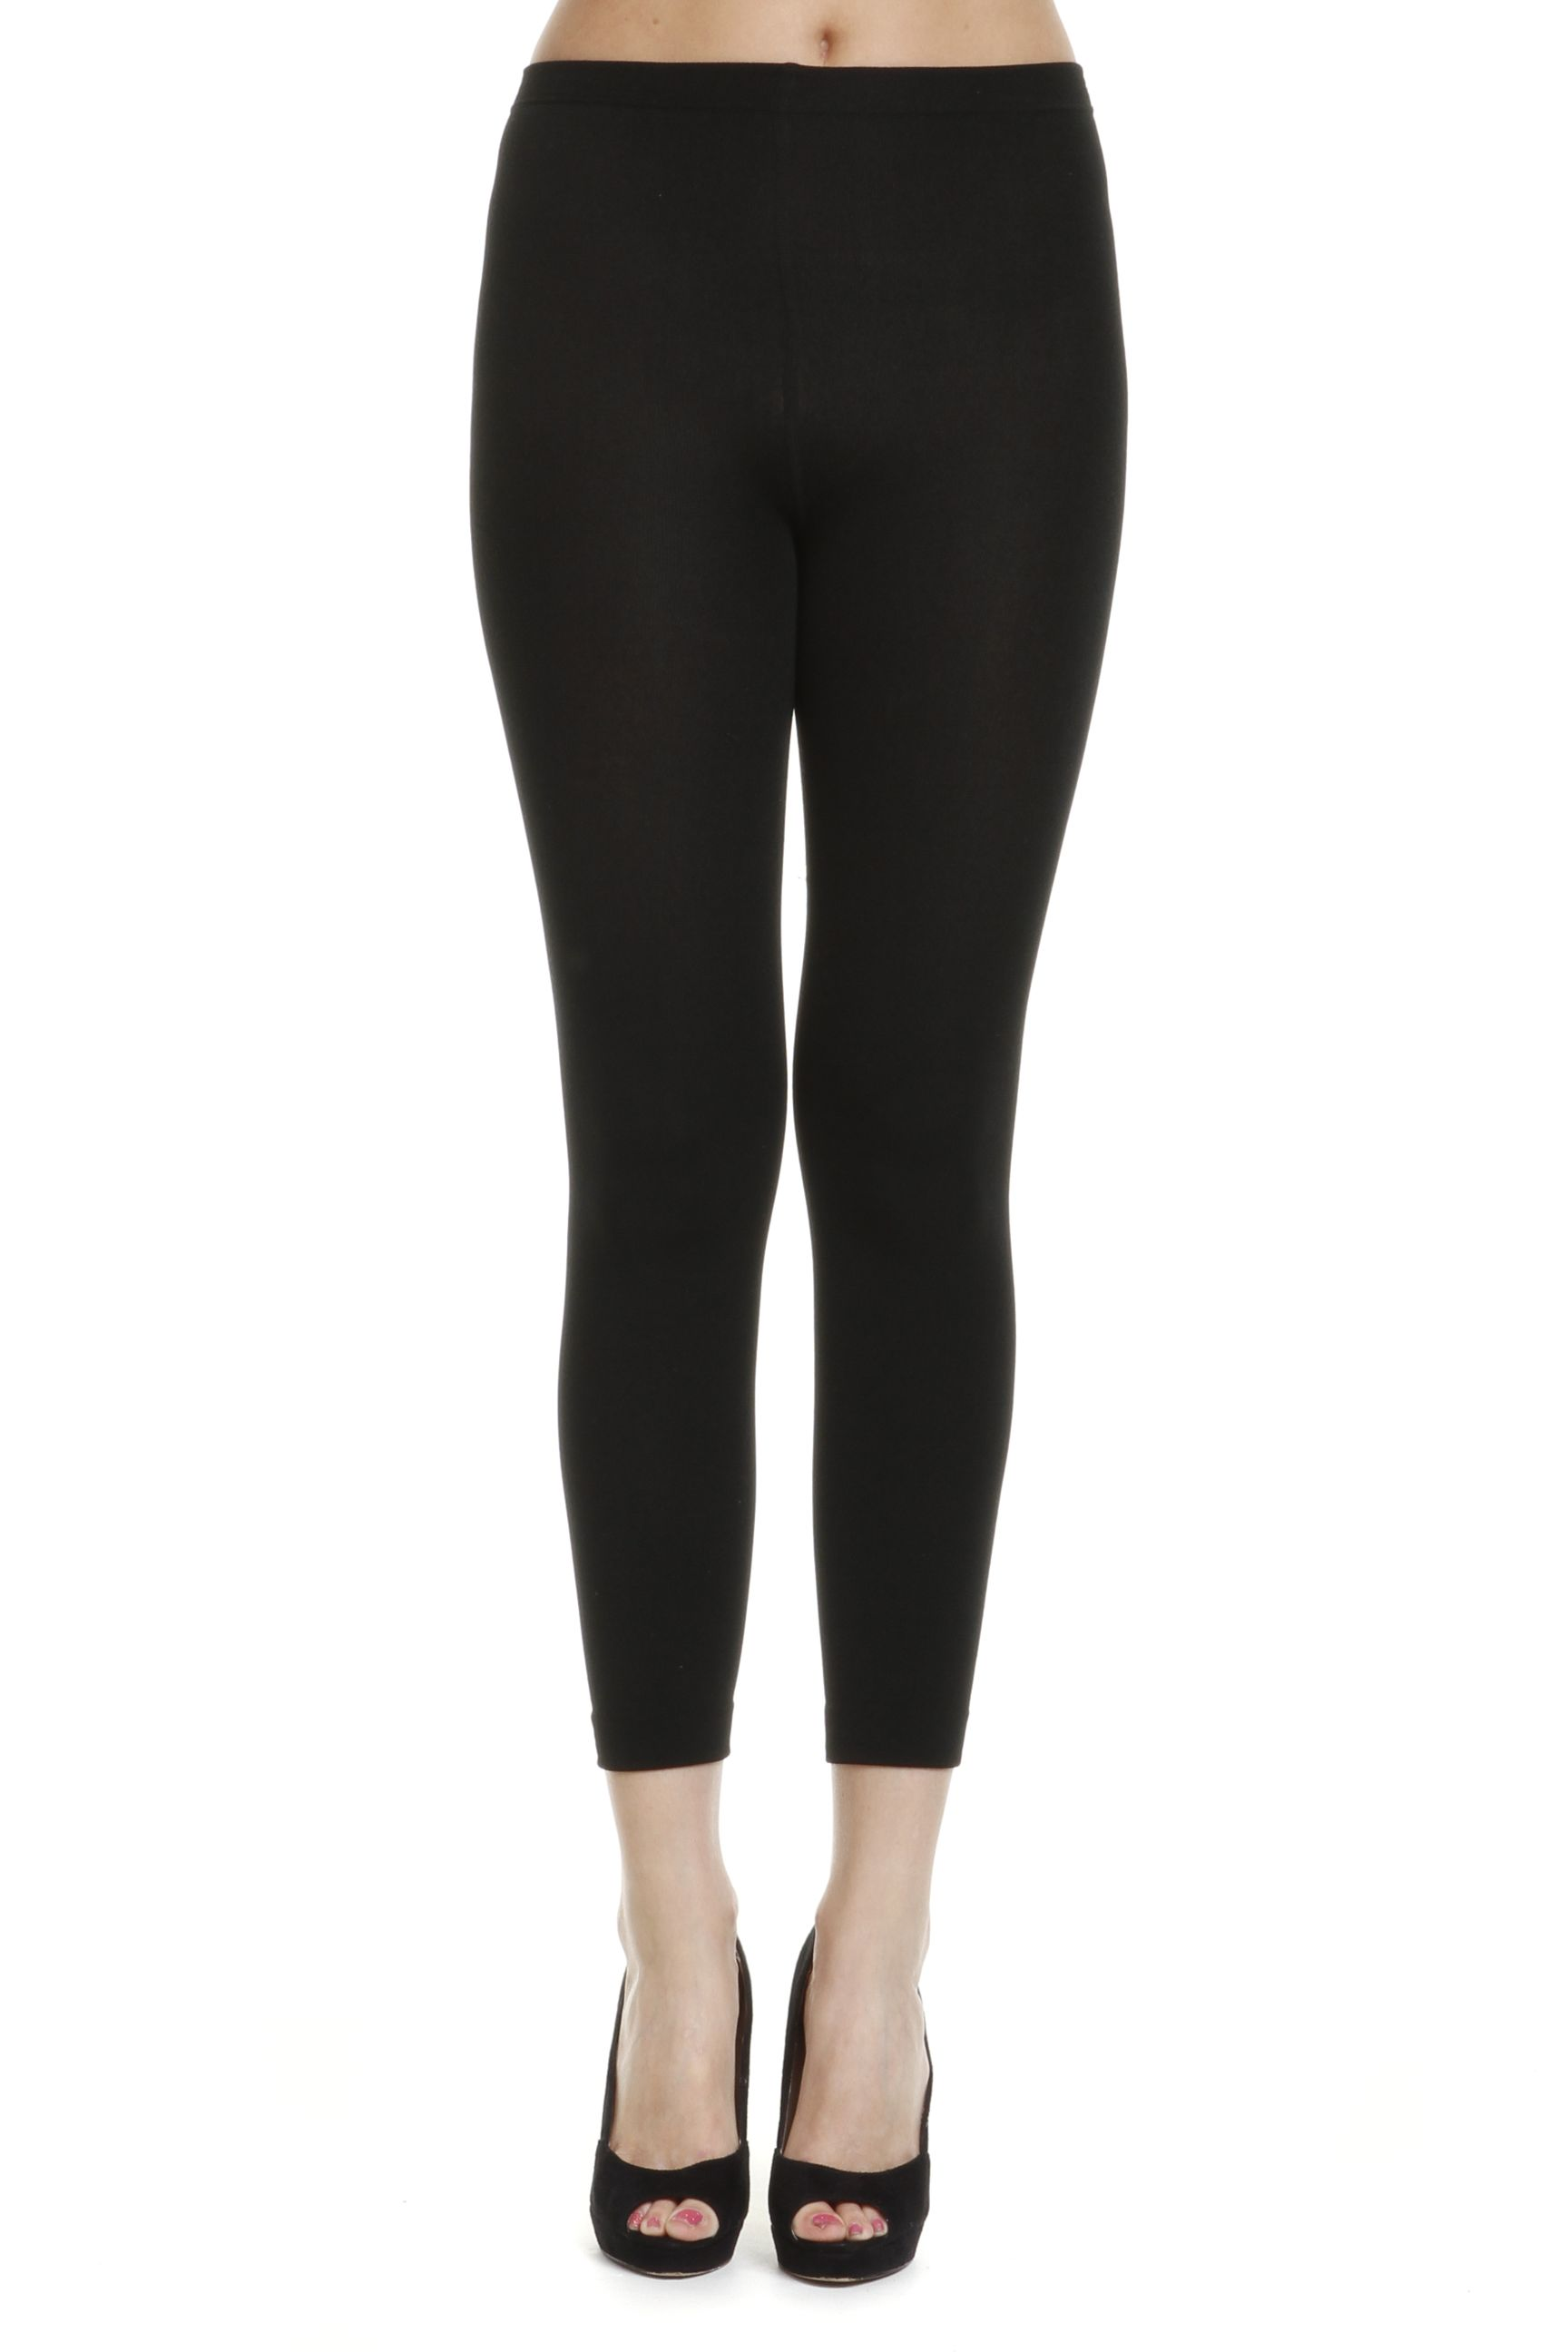 Stay warm and fashionable with these easy-to-wear flattering tights that have a soft fleece lining. Perfect under pants, dresses, skirts and tunics, they are 5/5.